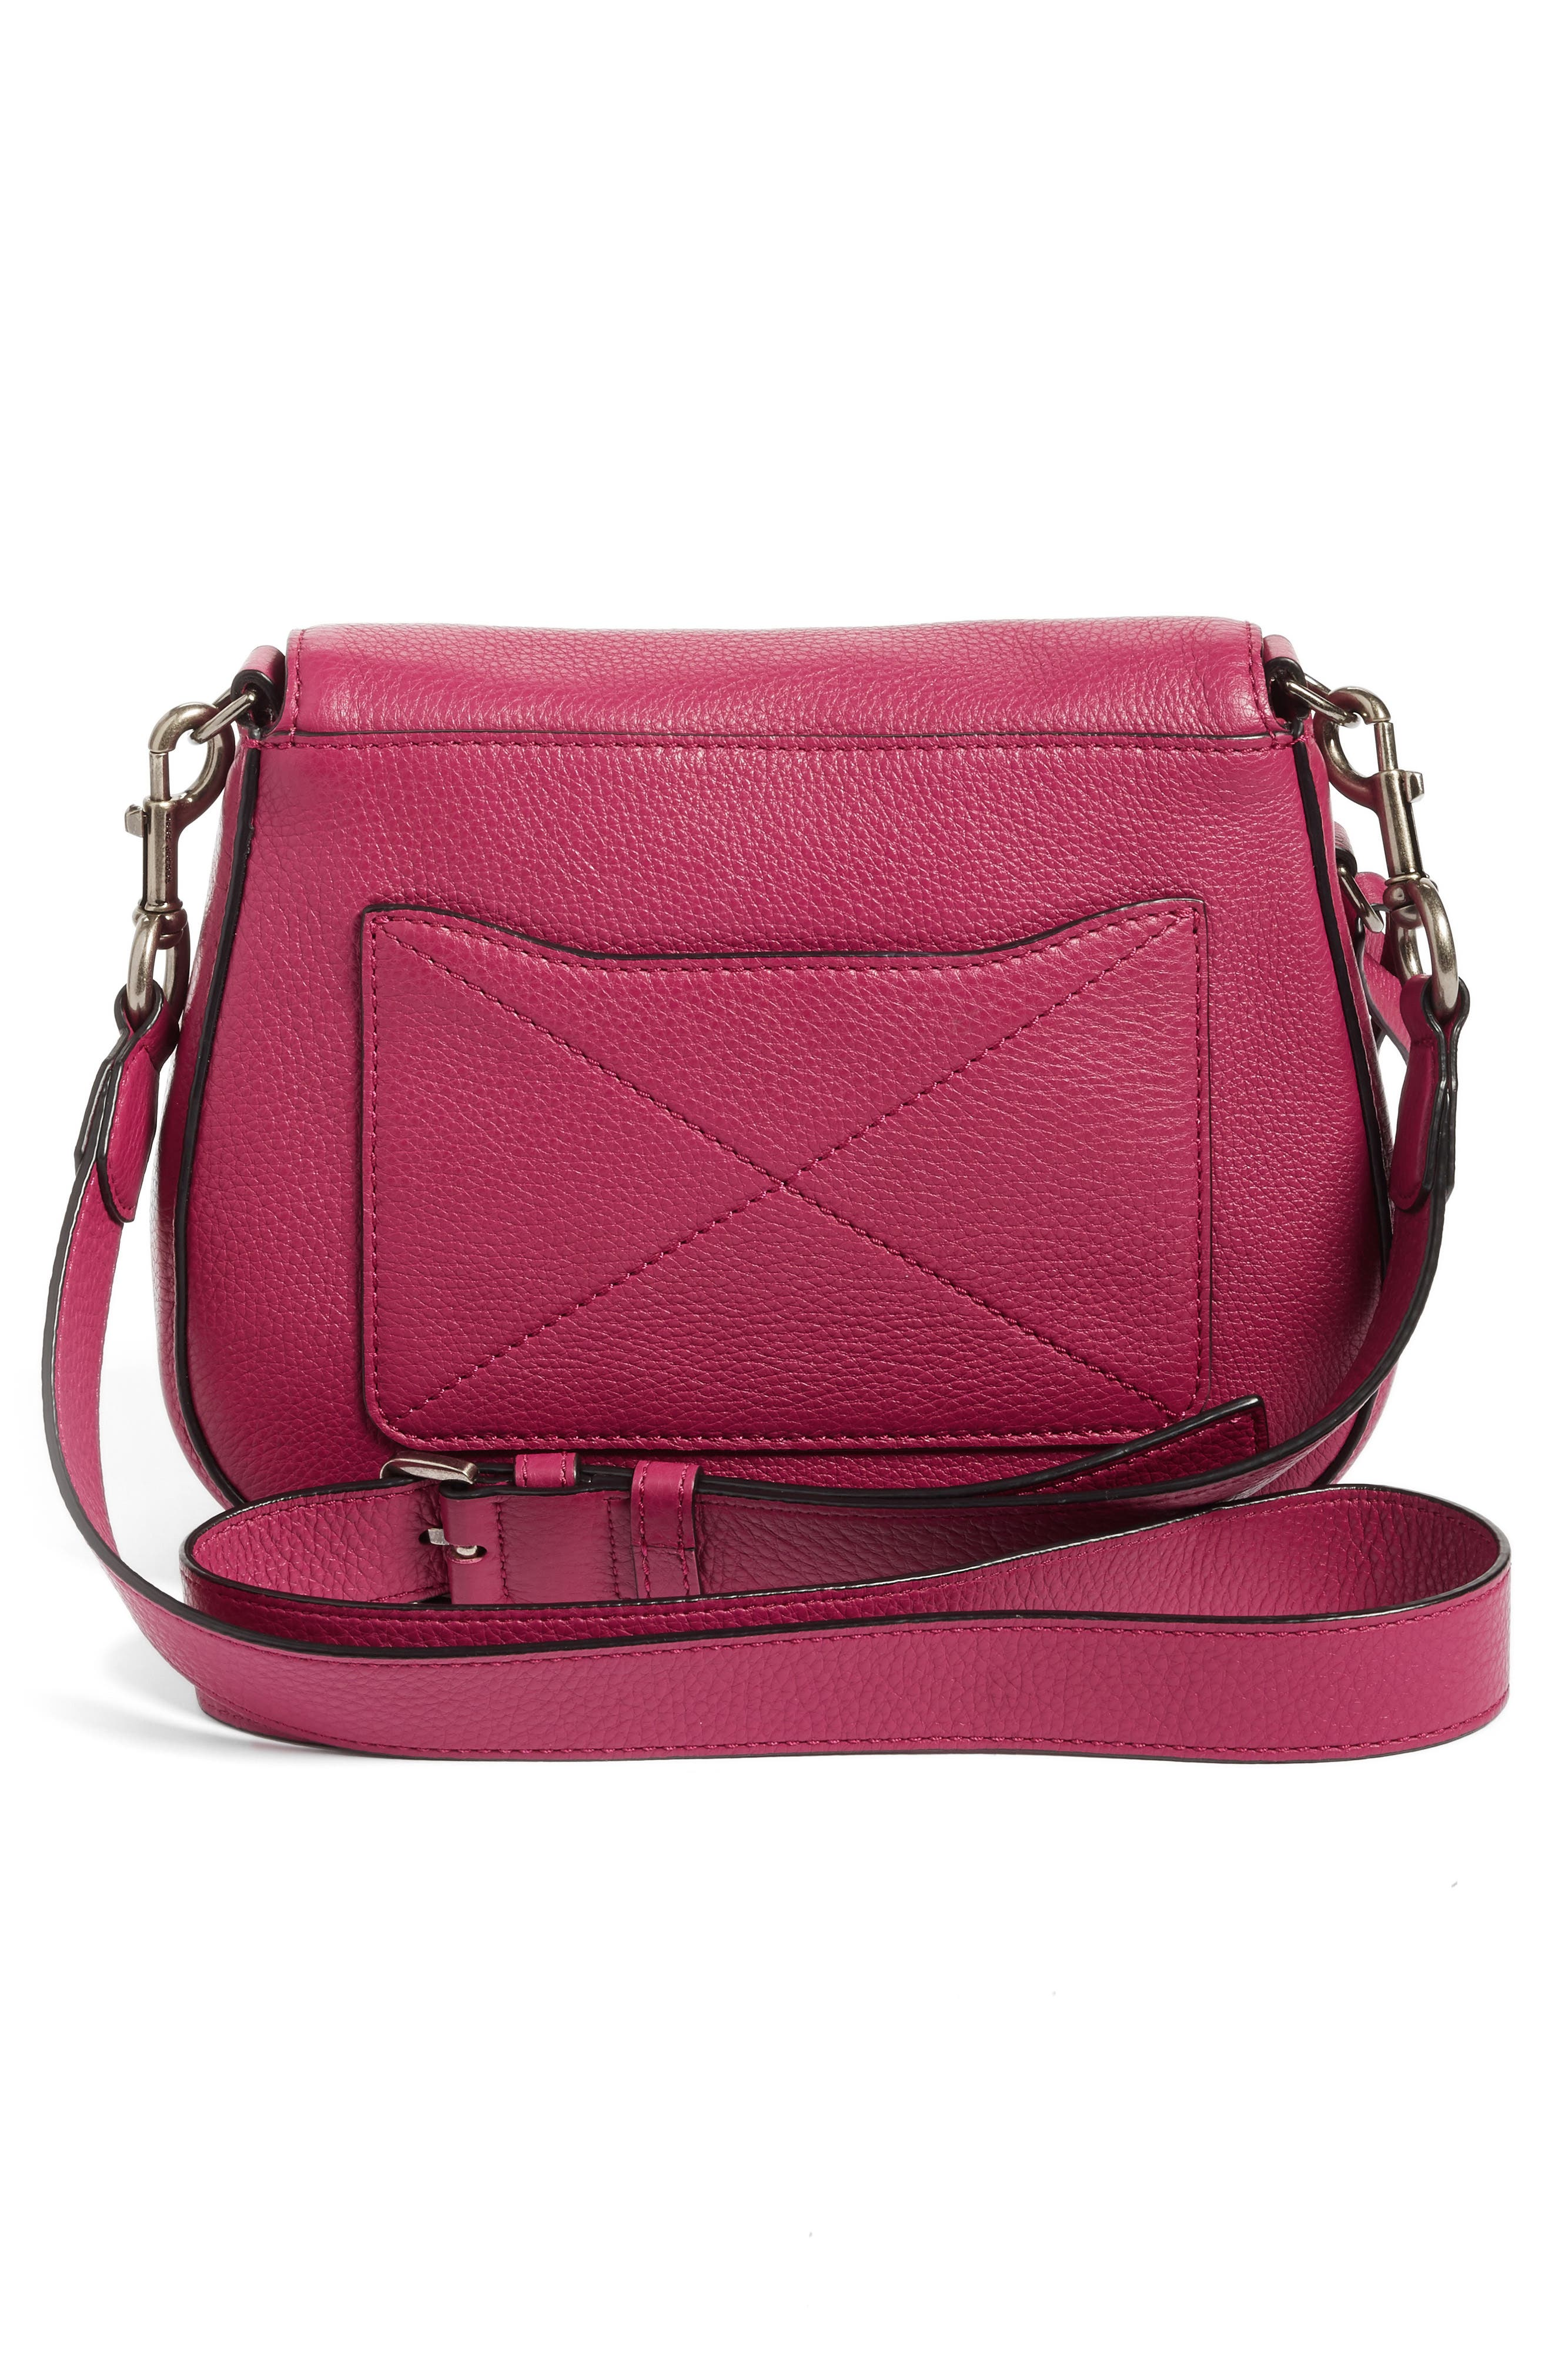 Small Recruit Nomad Pebbled Leather Crossbody Bag,                             Alternate thumbnail 55, color,